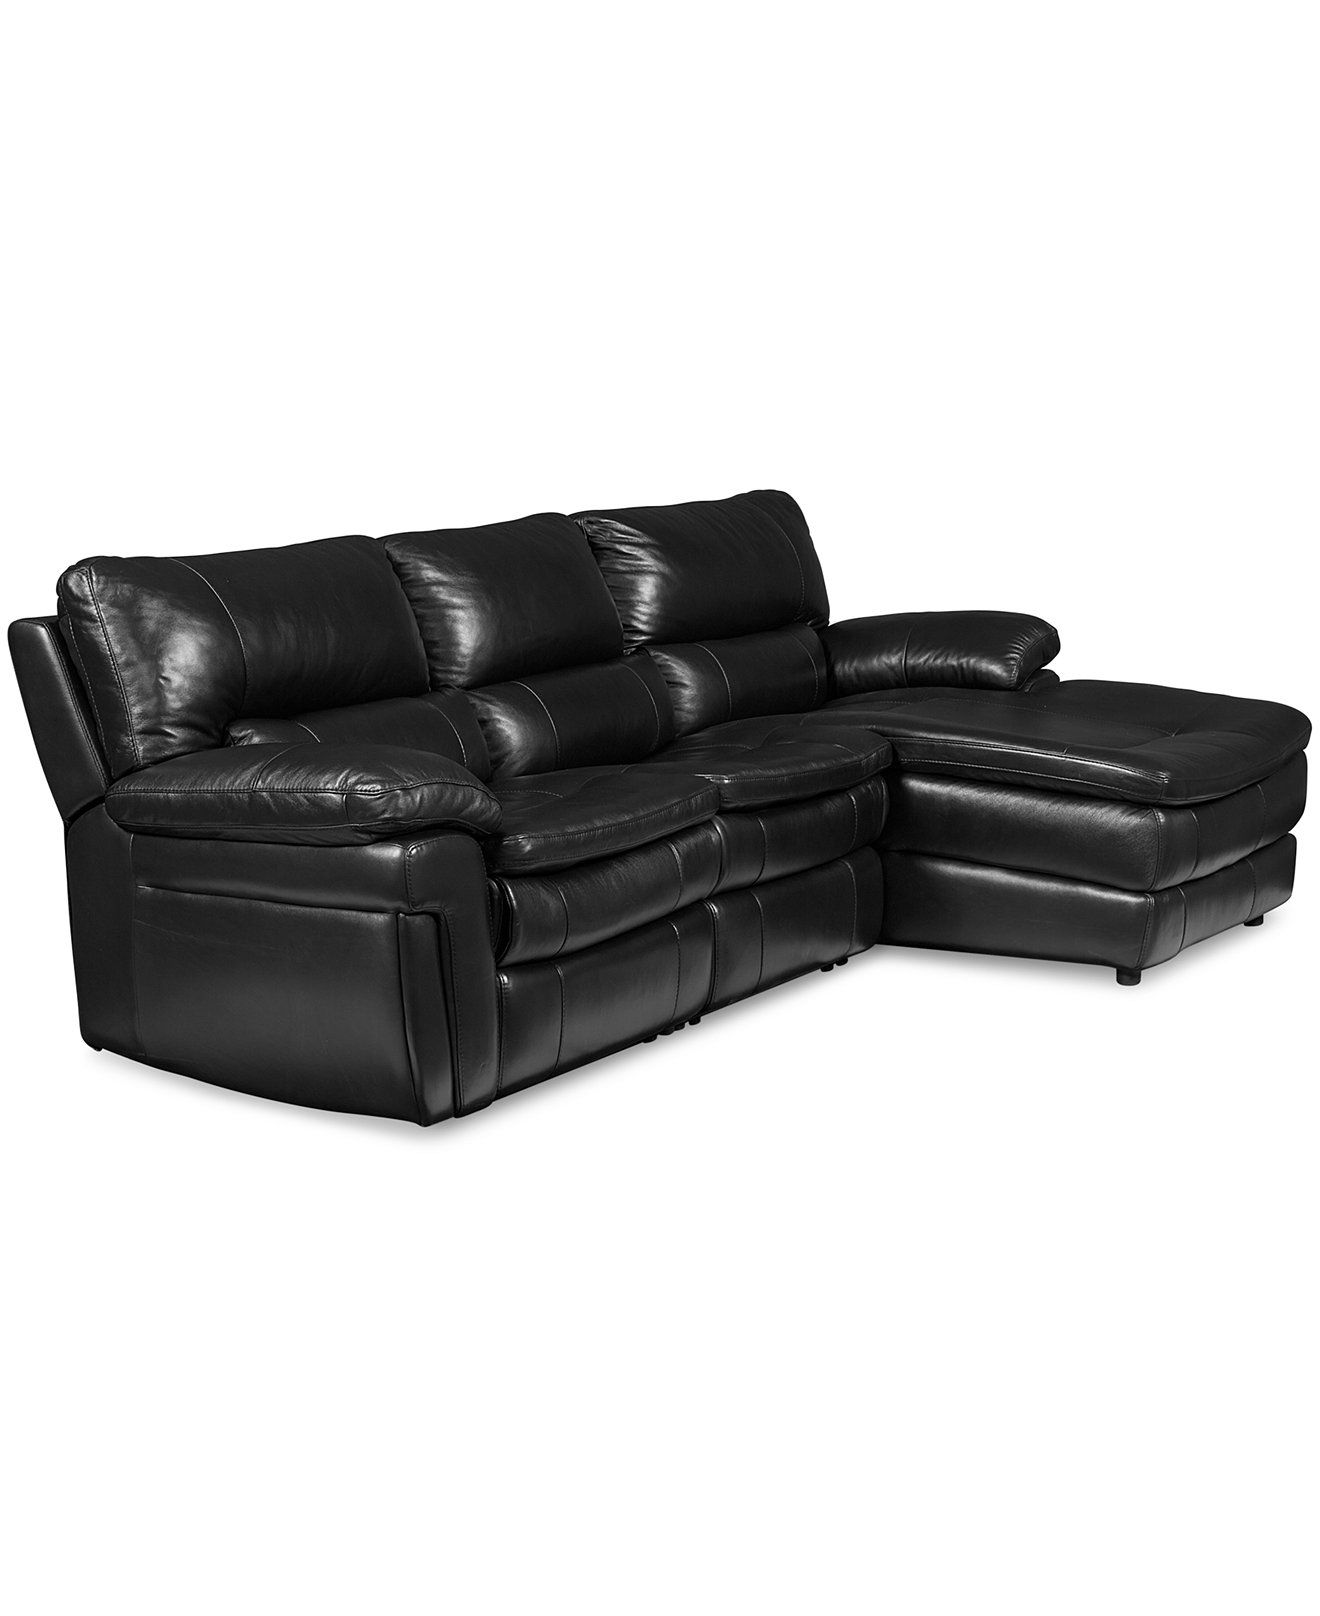 Zander Bonded Leather Power Reclining Sofa Review Home Plan